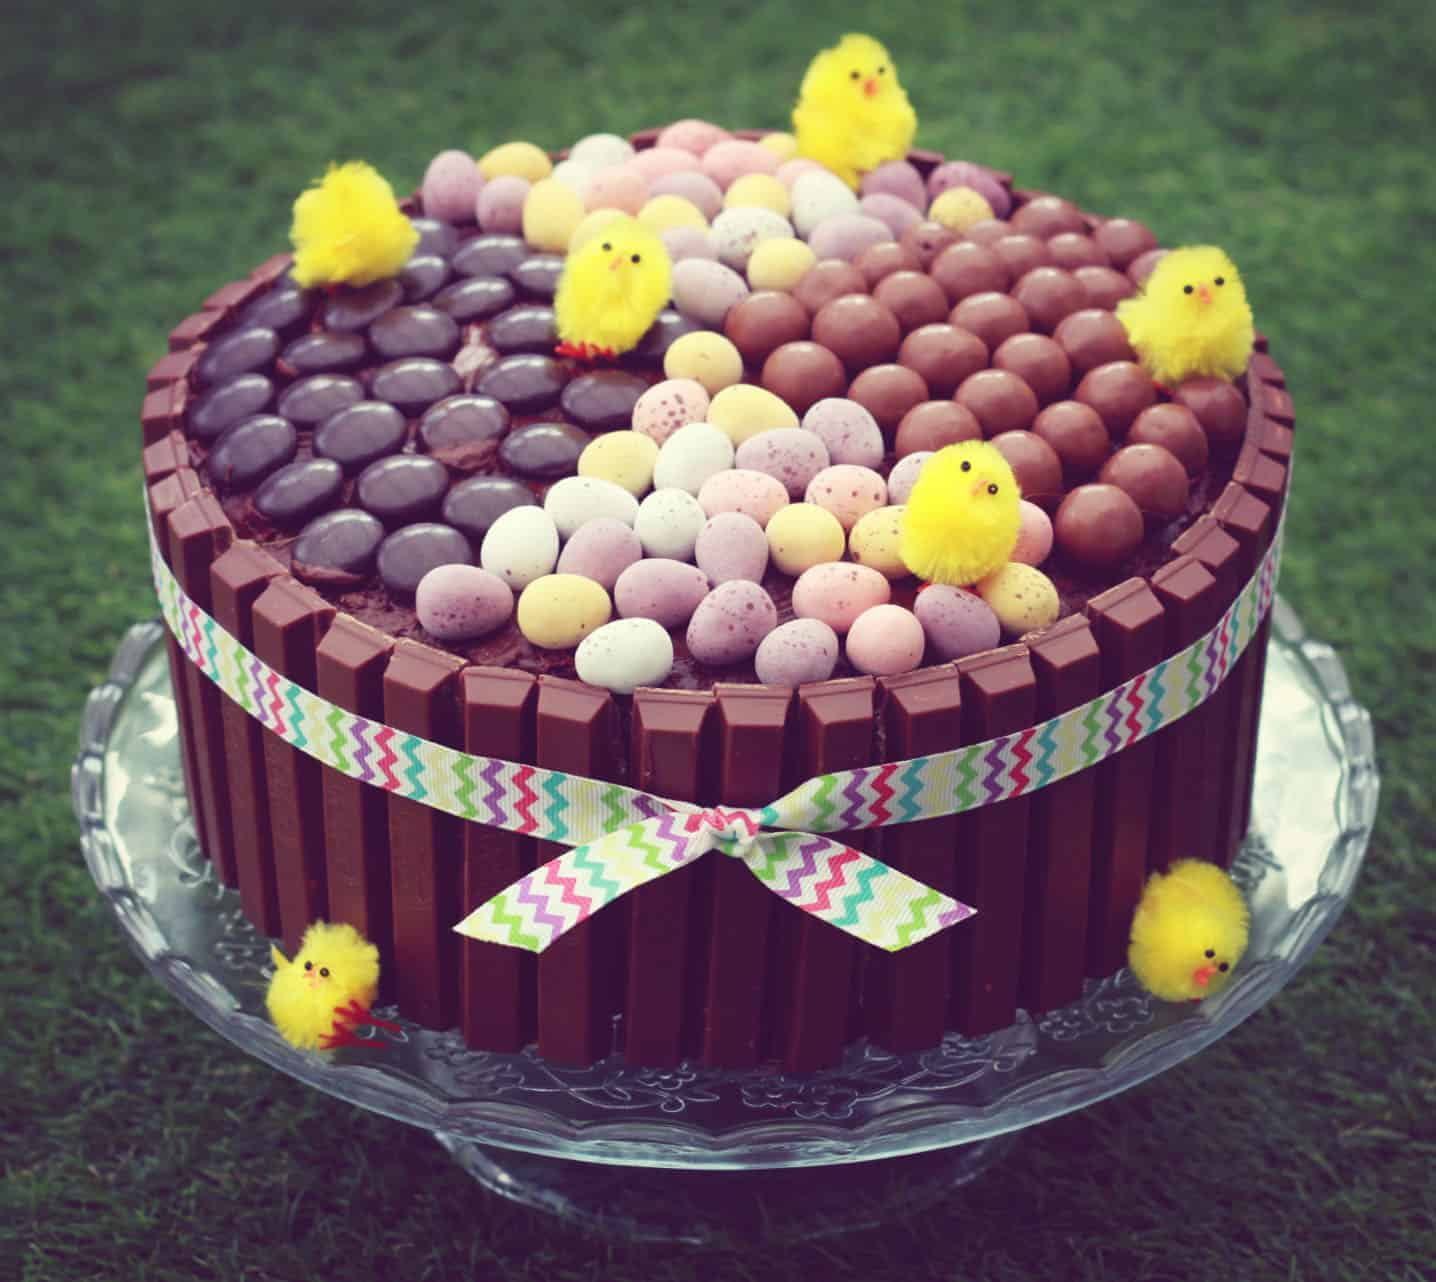 Chocolate Fudge Cake Showstopper For Easter